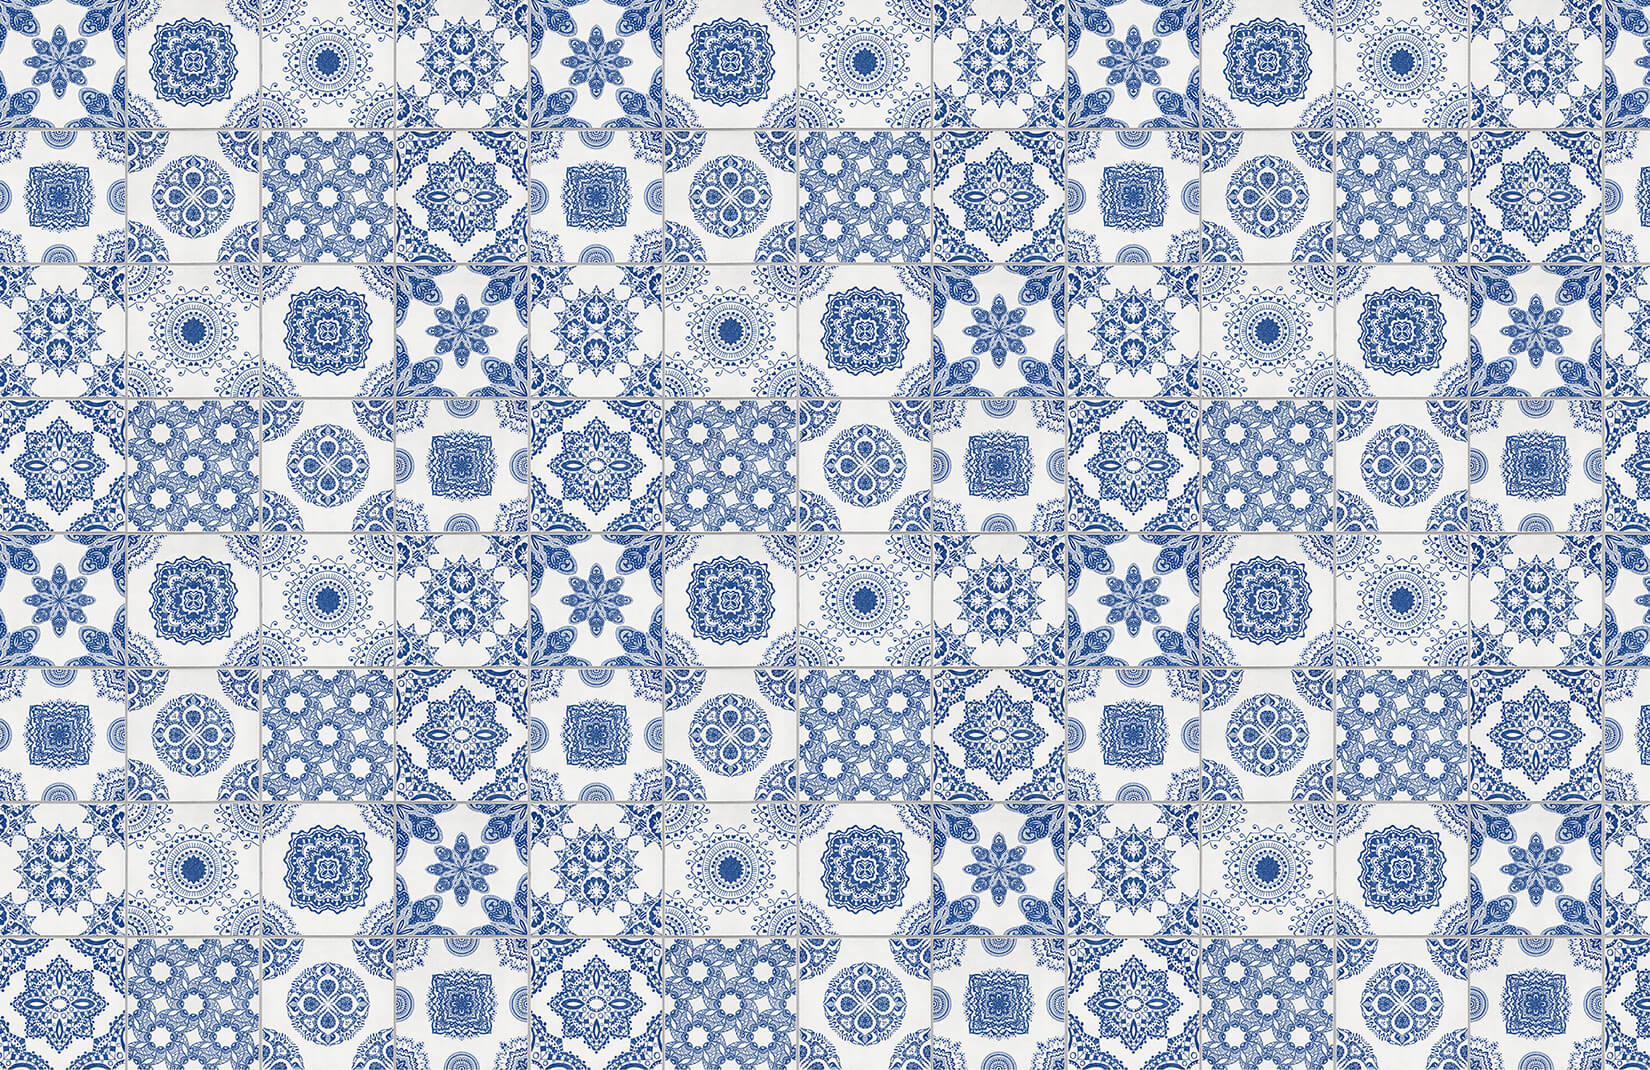 White And Blue Portuguese Tiled Wallpaper Murals Wallpaper